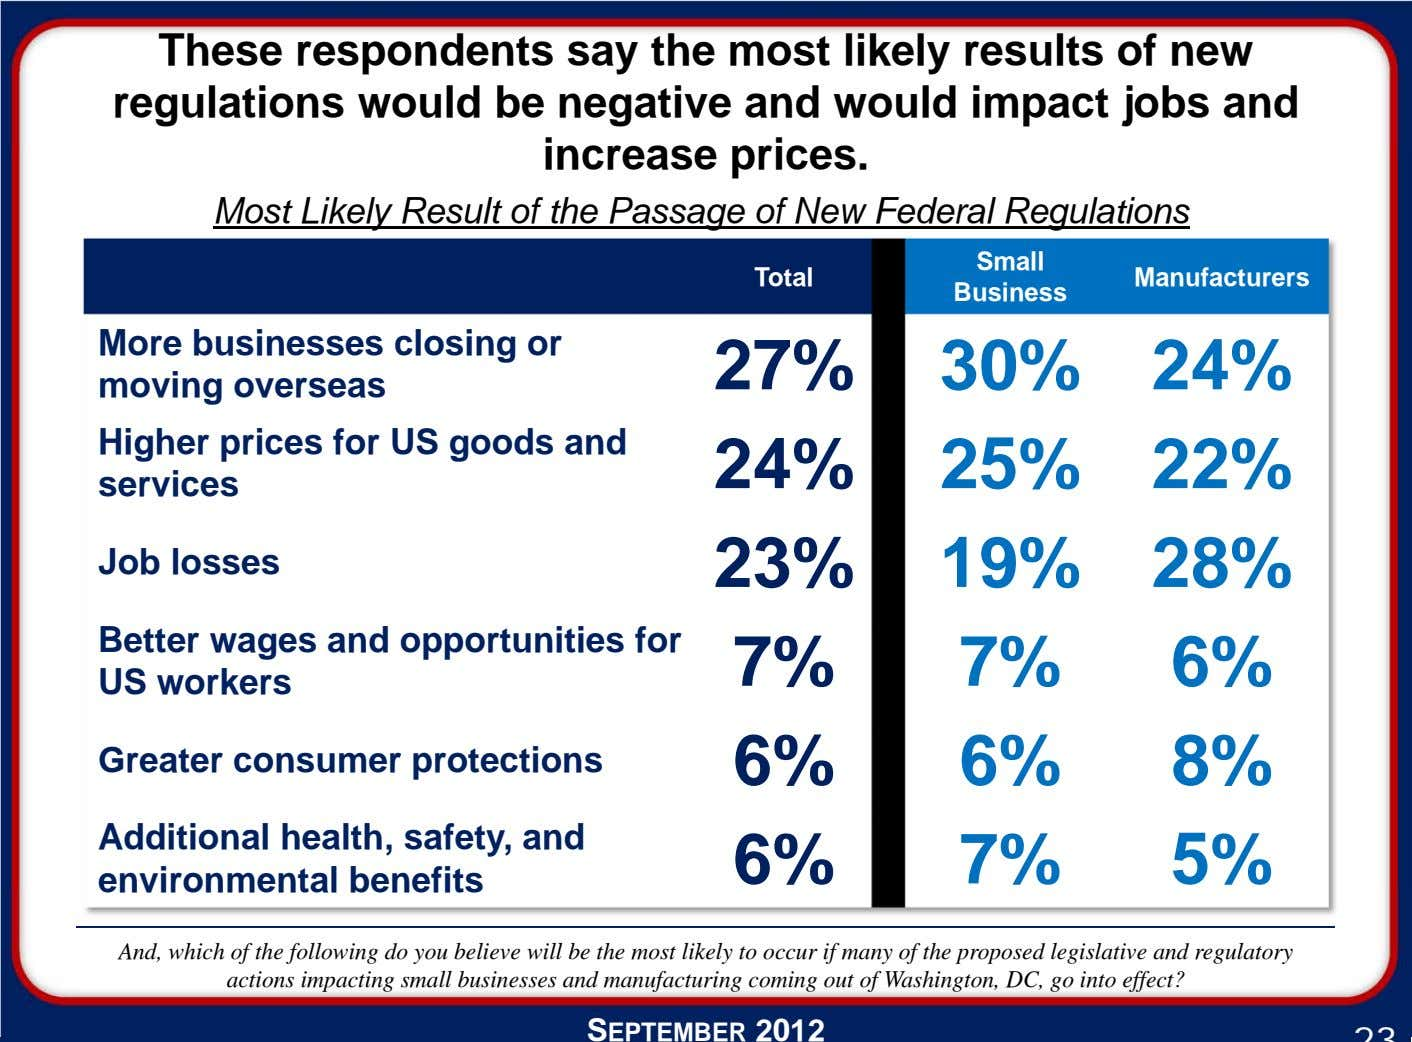 These respondents say the most likely results of new regulations would be negative and would